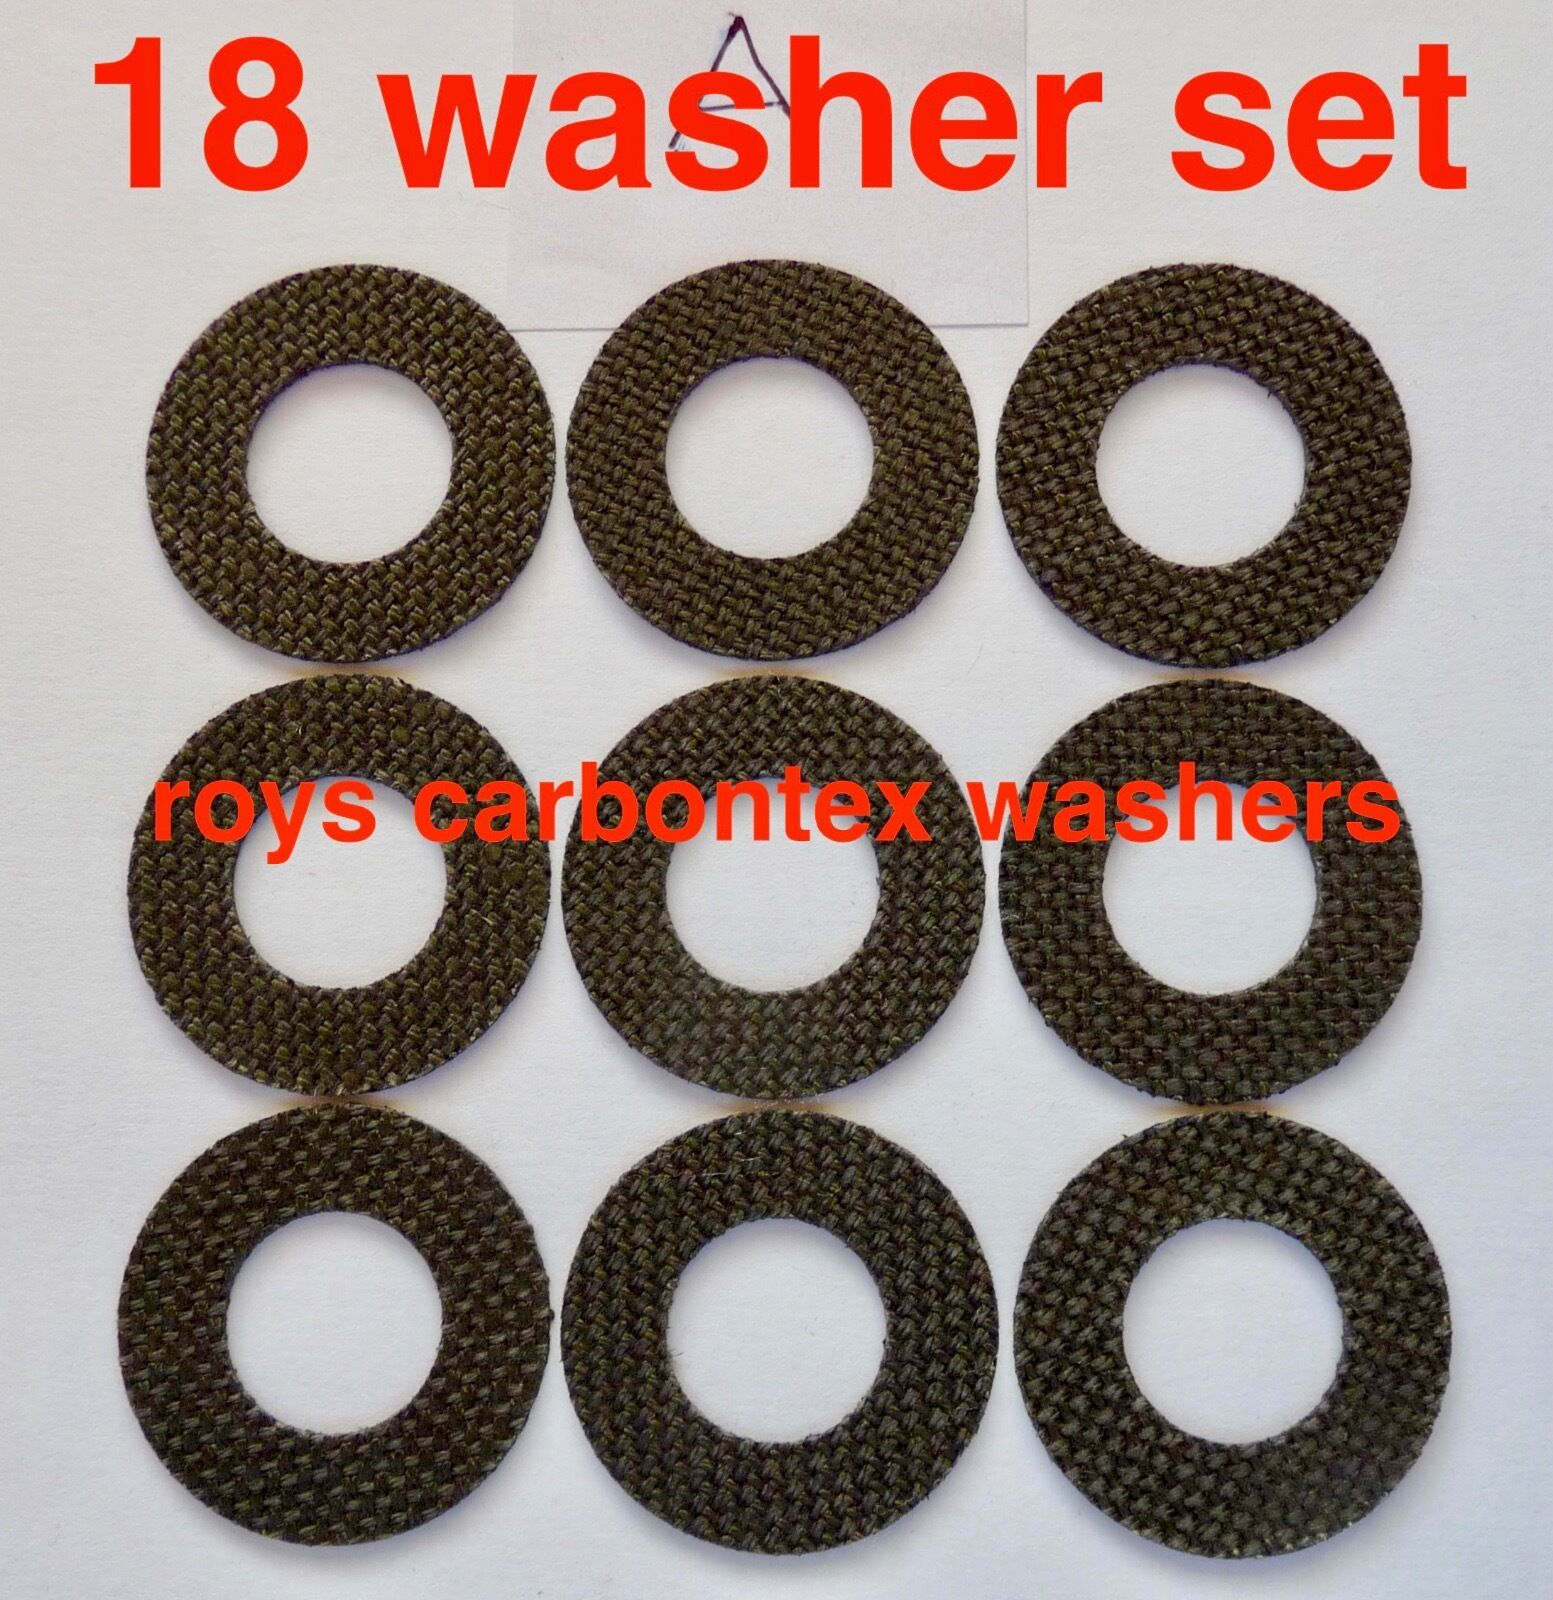 6 sets Roys carbontex drag washers suitable for NEW  shimano ultegra Ci4 14000